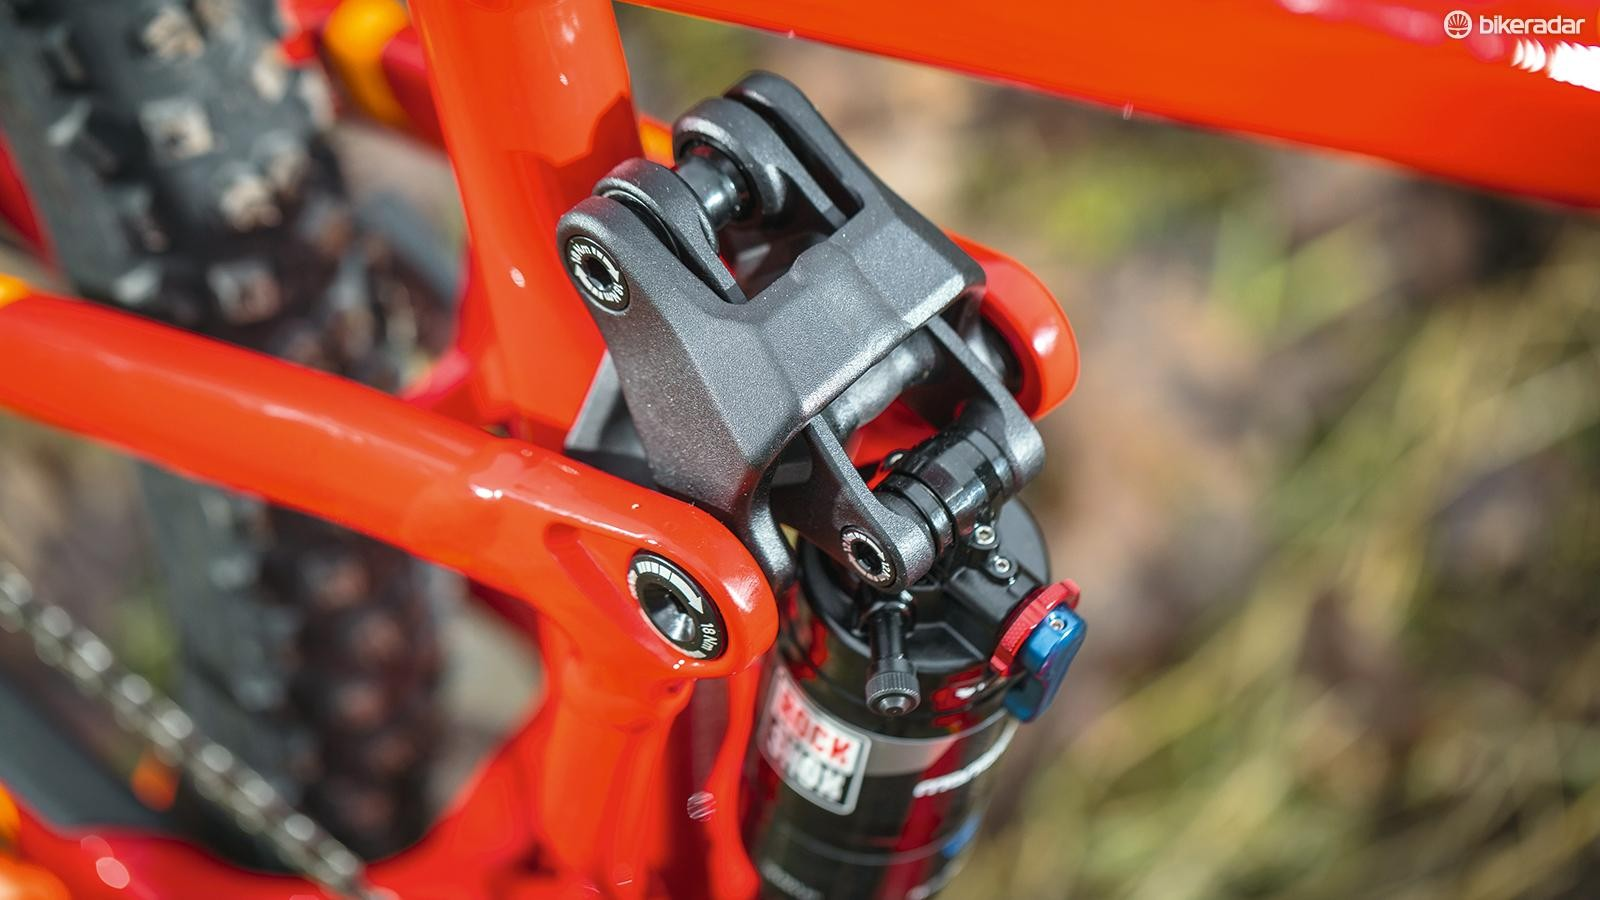 The FOLD linkage system flexes for an excellent suspension